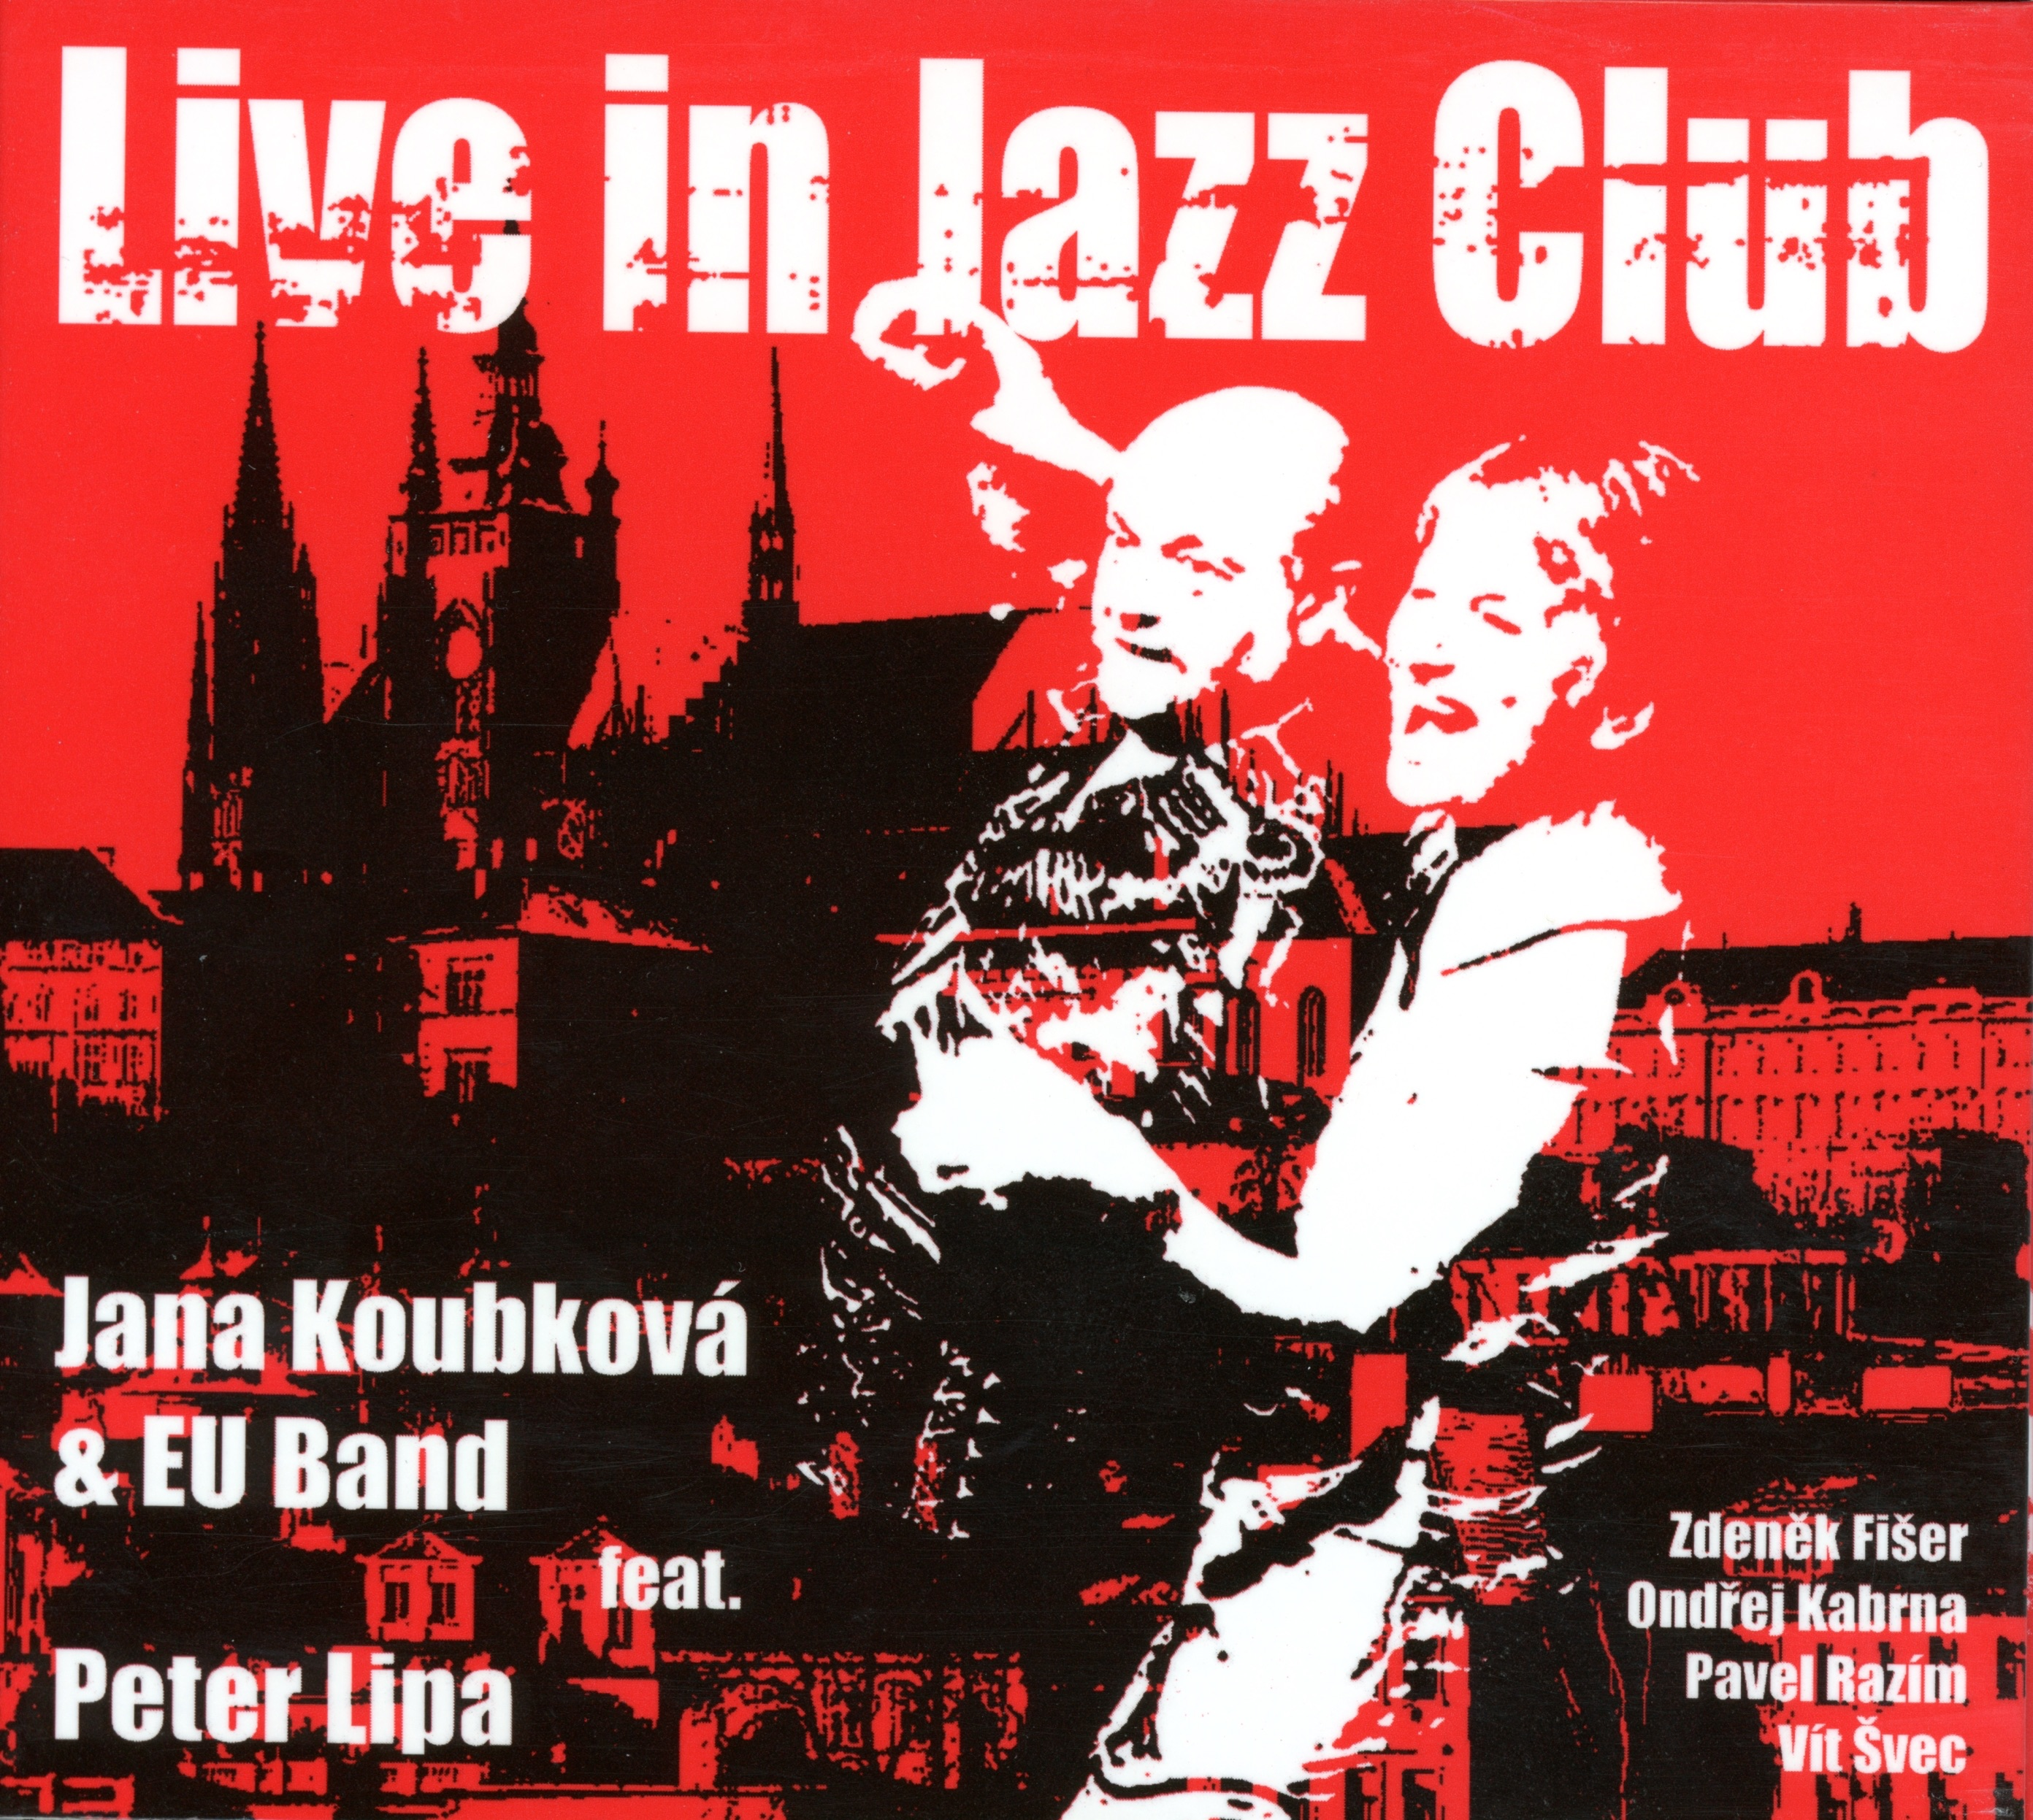 MP3 Songs Online:♫ A Child Is Born (feat. Petr Lipa) - Jana Koubková album Live In Jazz Club (Live) (feat. Petr Lipa). Jazz,Music listen to music online free without downloading.